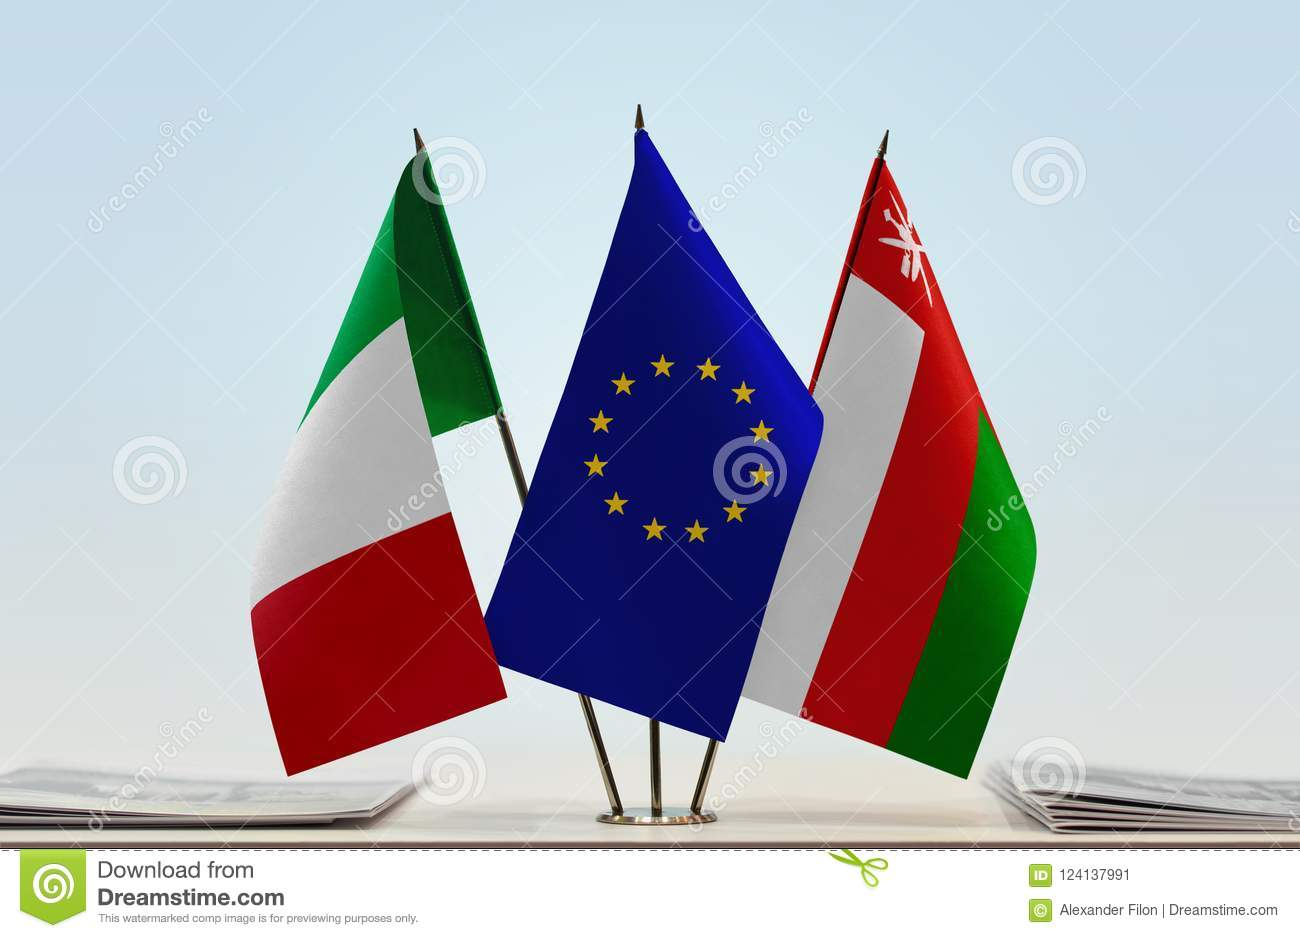 Flags of Italy EU and Oman